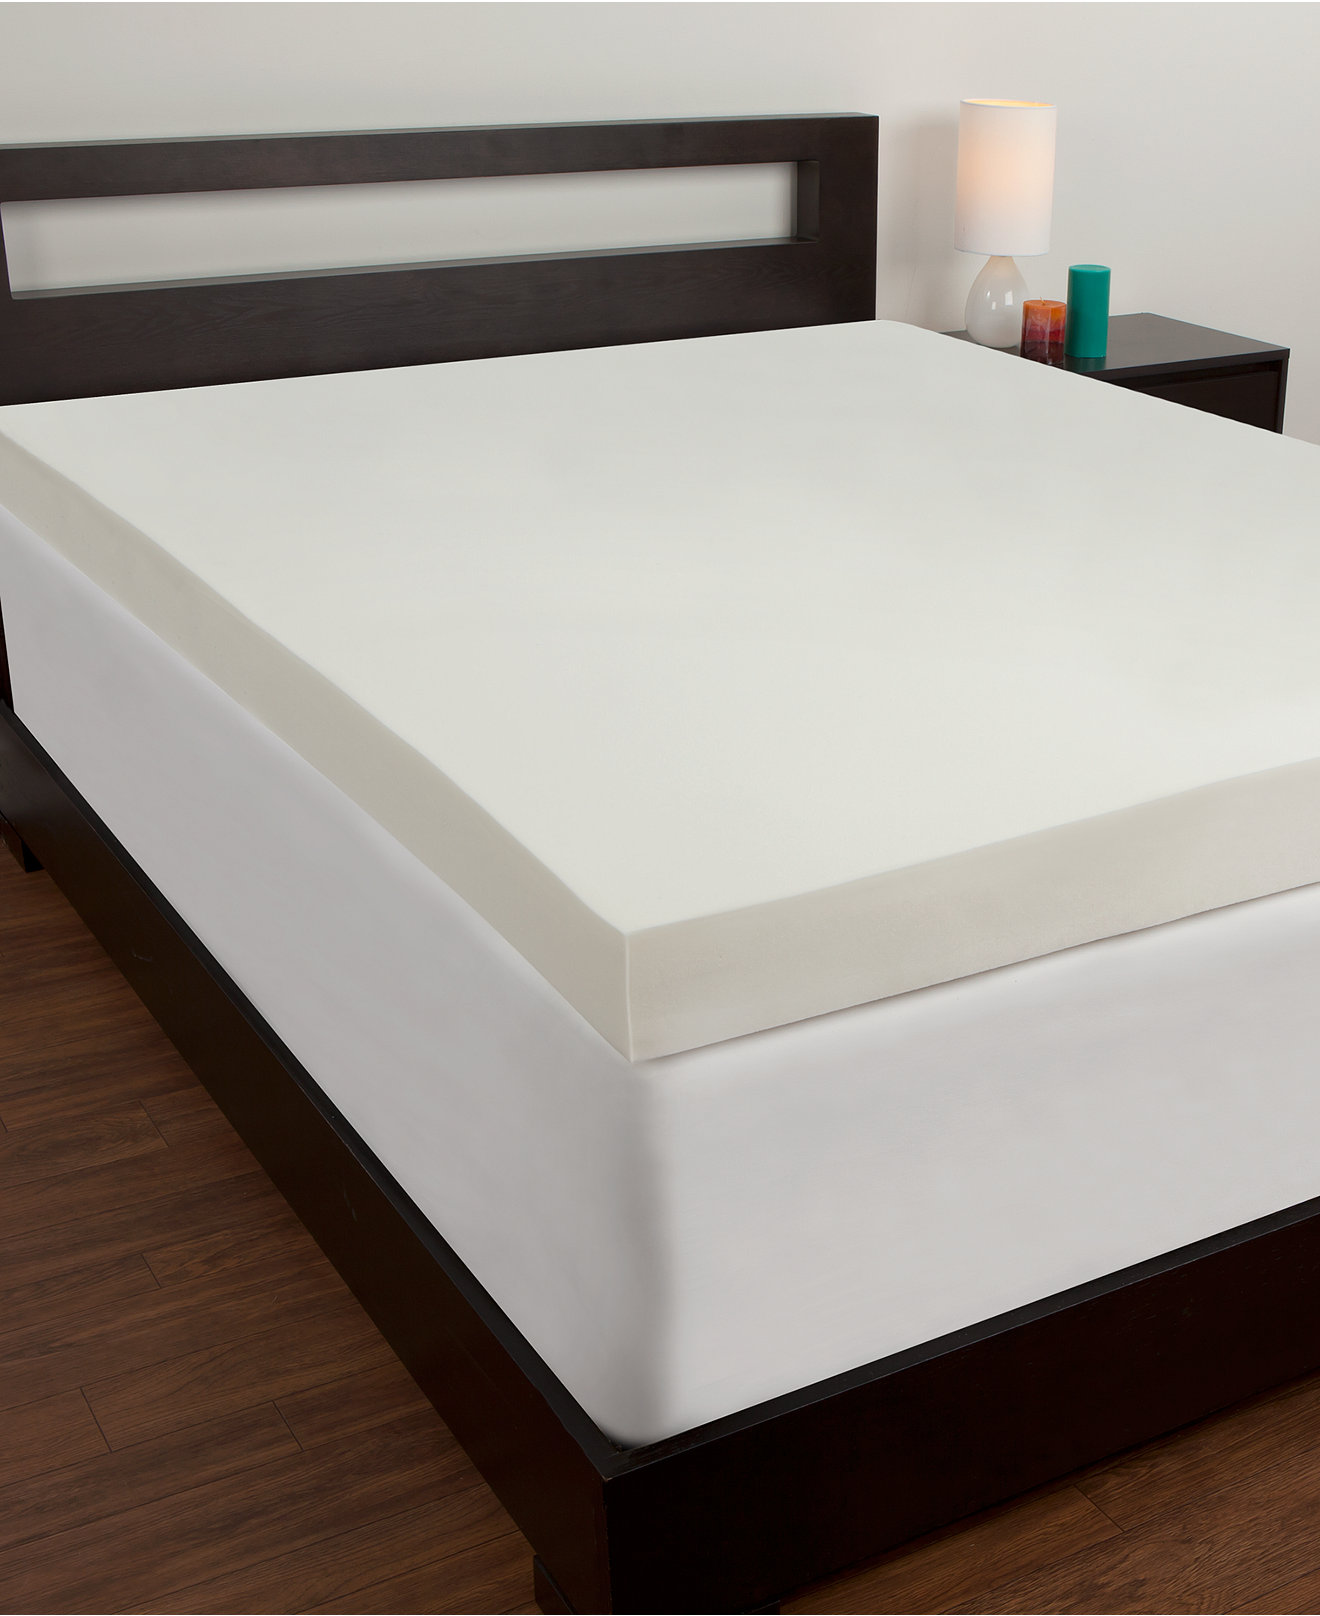 Serta 3 inch memory foam mattress topper - Comfort Revolution 4 Memory Foam Mattress Toppers